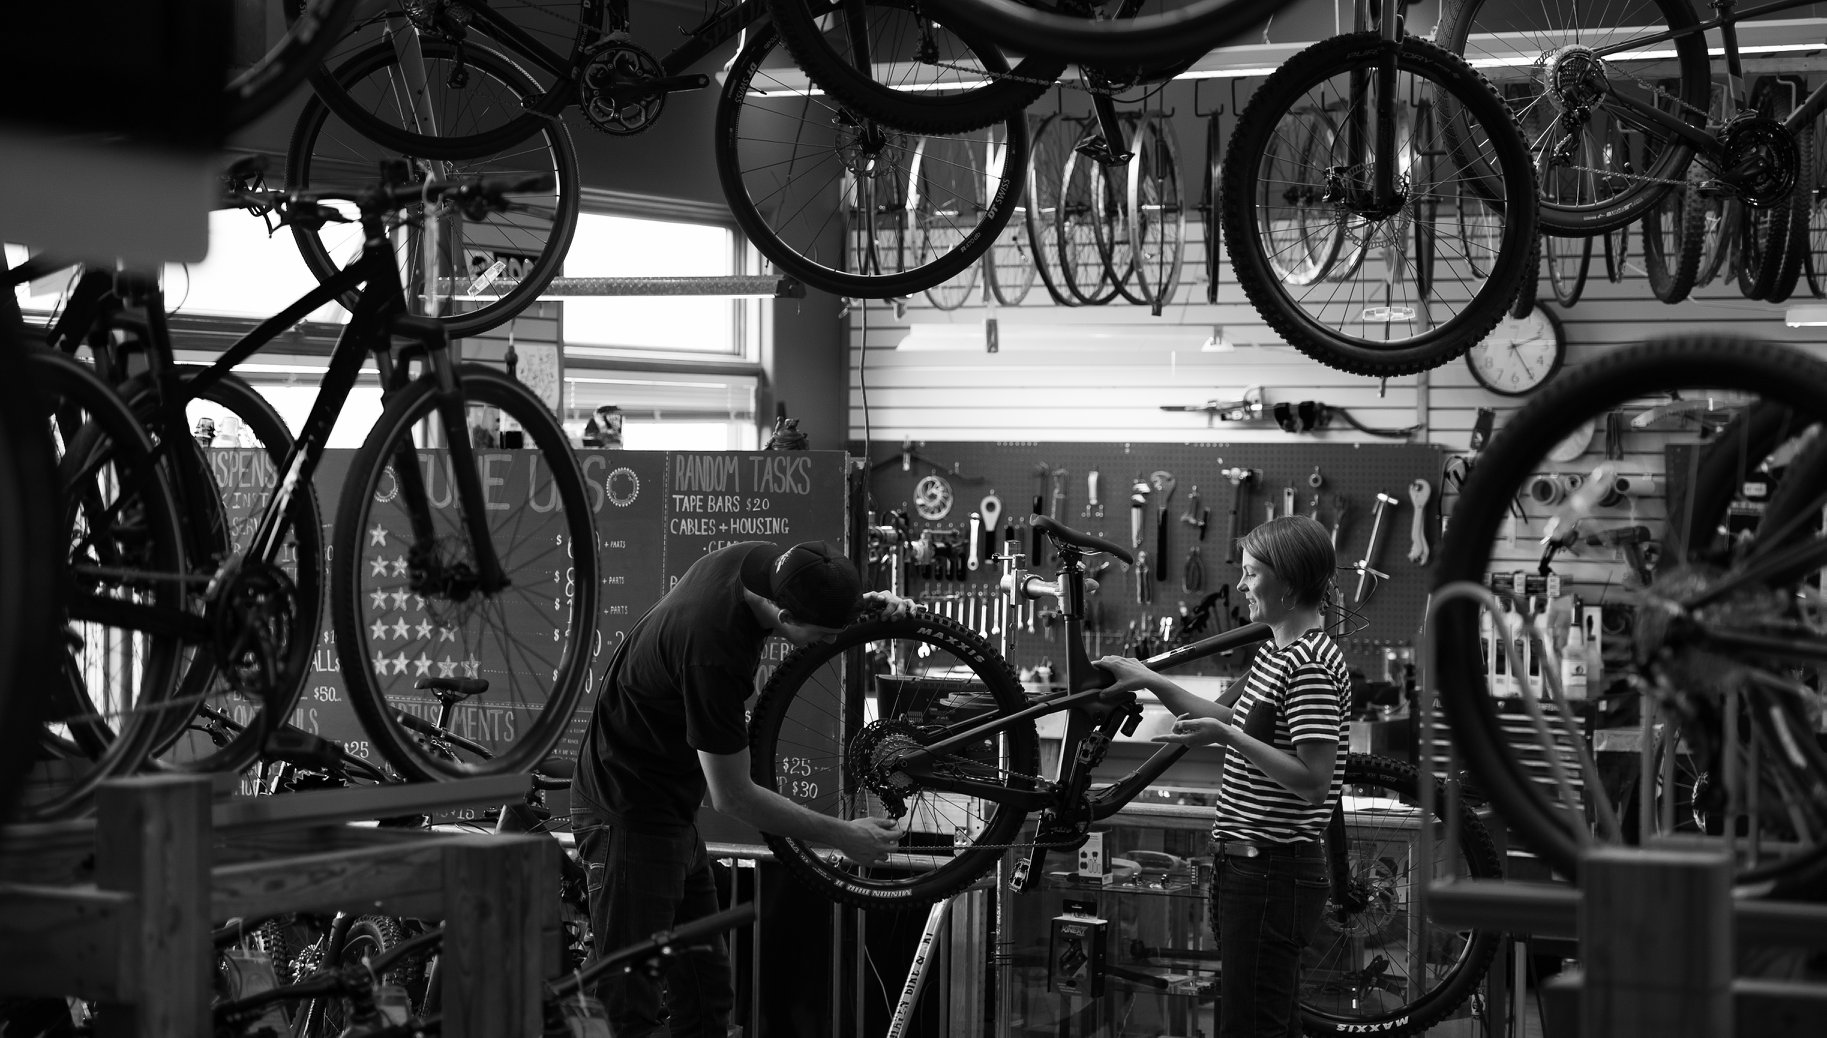 OUR MISSION - At Fairhaven Bicycles, our mission is to provide a fun, safe and informative bicycle shopping experience. We are experienced, enthusiastic and focused on getting you on the right bike for your riding needs or into the correct gear for what you ride. Our diverse product selection is curated to suit the needs of nearly all types of riders, whether you are riding daily for transportation, putting in road miles, searching for more singletrack or cruising along the waterfront. We have bikes in stock and ready to ride. We also offer a large selection of kids' bikes for young riders of all ages.Of course, the experience doesn't always have to be about the bike. Fairhaven offers a sizeable clothing selection for women, men, and kids, in addition to all the accessories and gear you might need to make the ride more enjoyable.The bike shop is nothing without the shop and our service department is top notch. We have a quick turnaround time, a large parts selection in stock and mechanics with deep and wide-ranging knowledge of bicycle repair.Fairhaven Bicycles also offers demo bikes. We have an easy online reservation system on our website with walk-in options occasionally available as well.